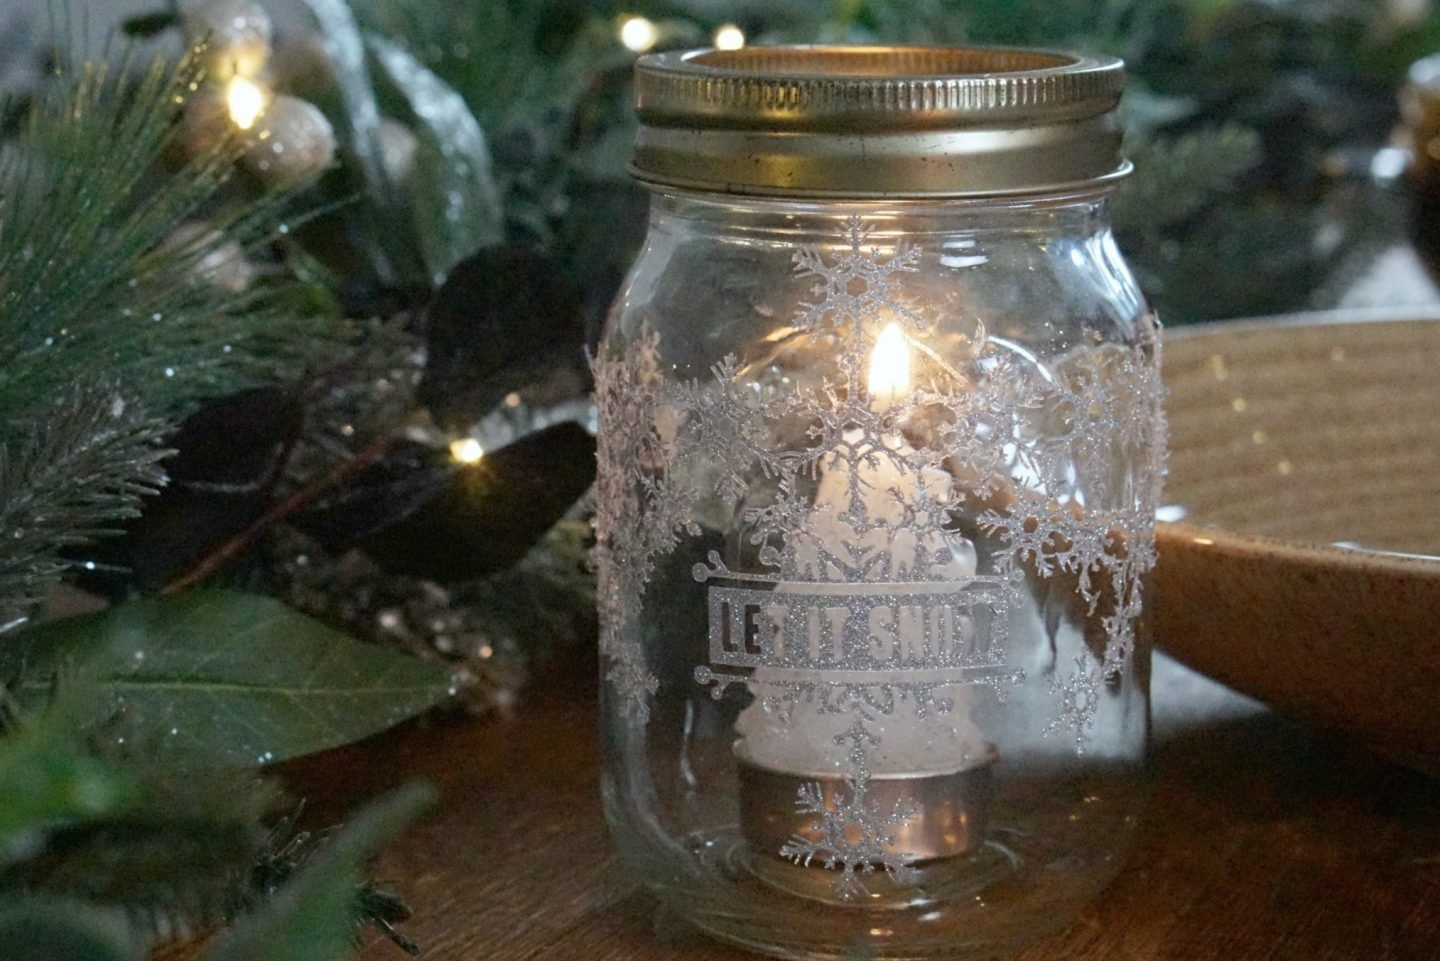 Festive Decorated Mason Jar, with Cricut www.extraordinarychaos.com